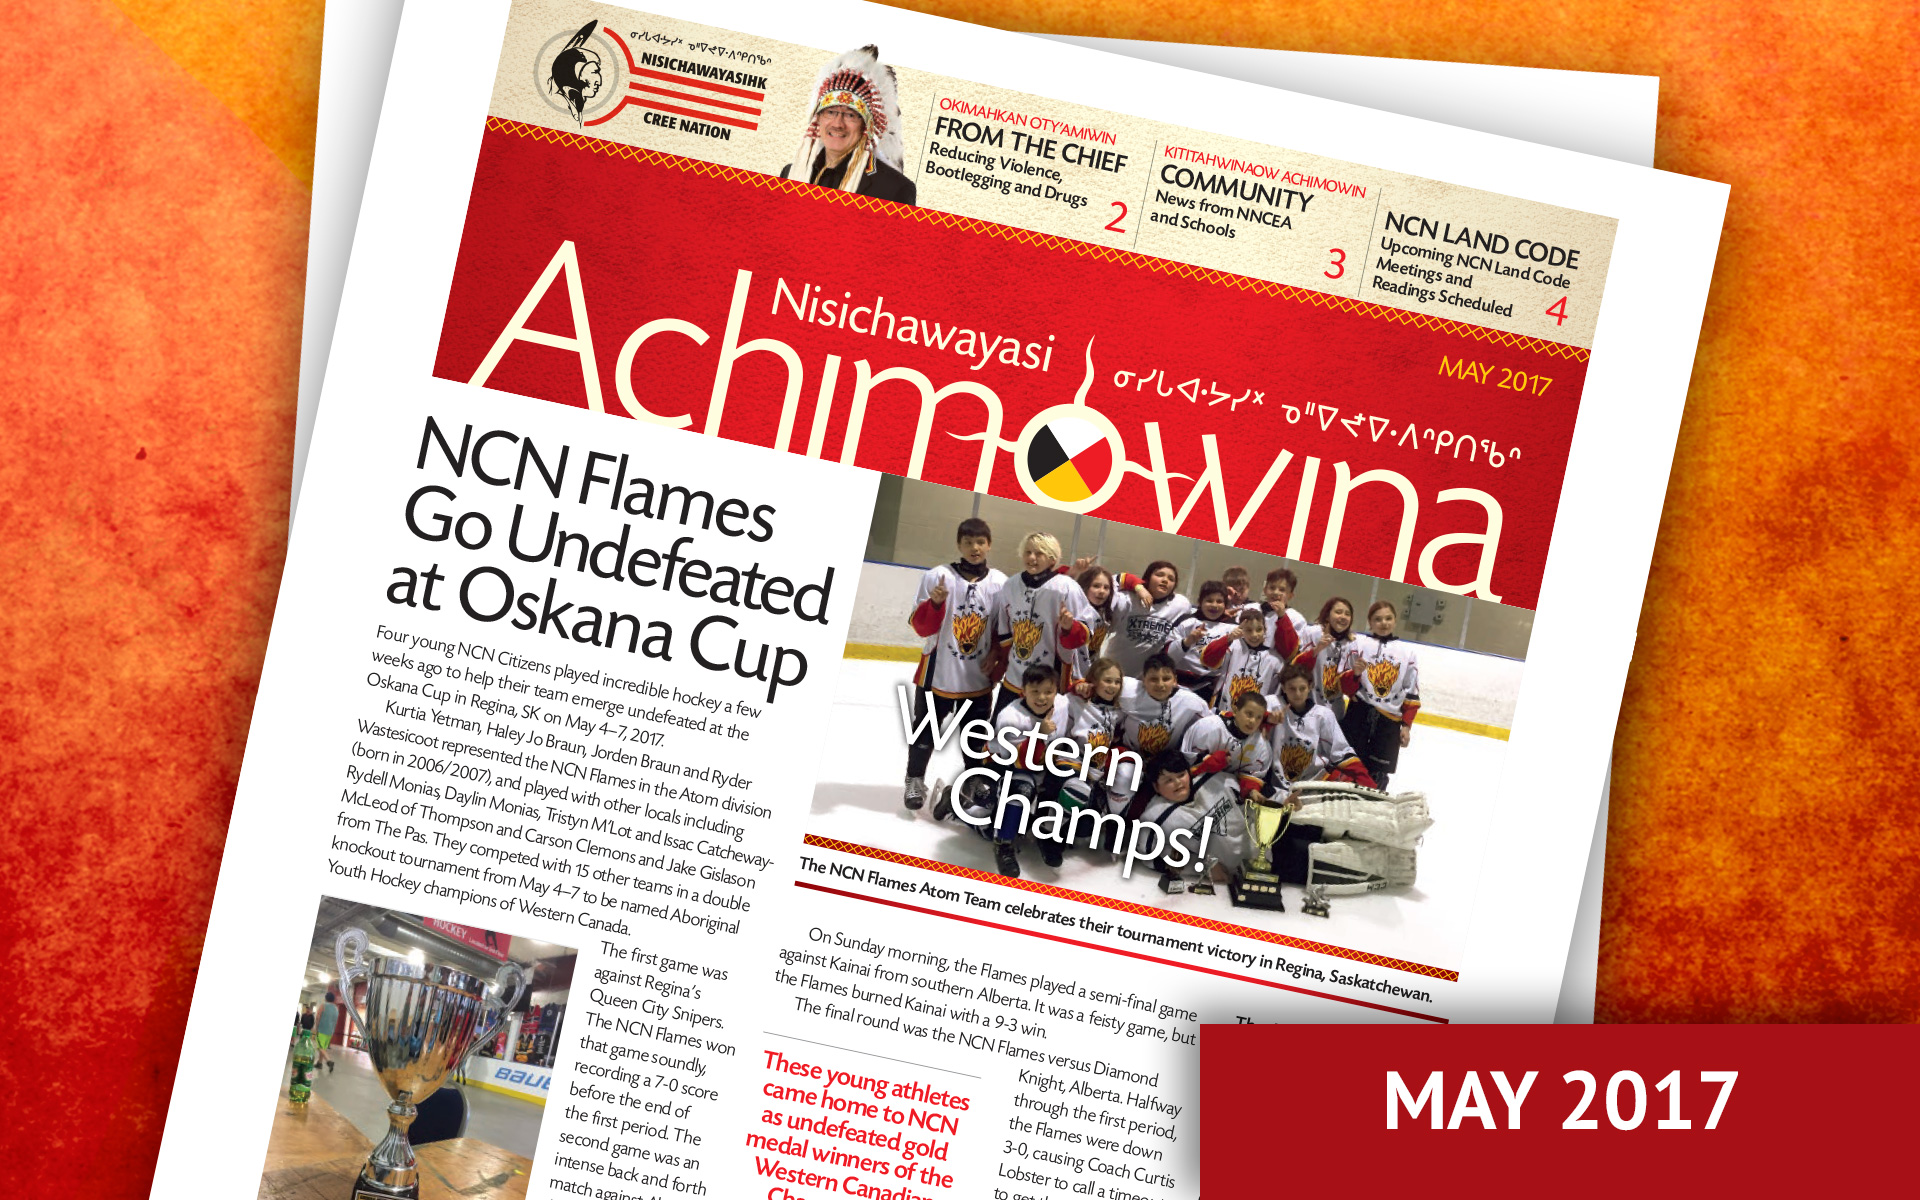 Achimowina May 2017 - NCN Flames Go Undefeated